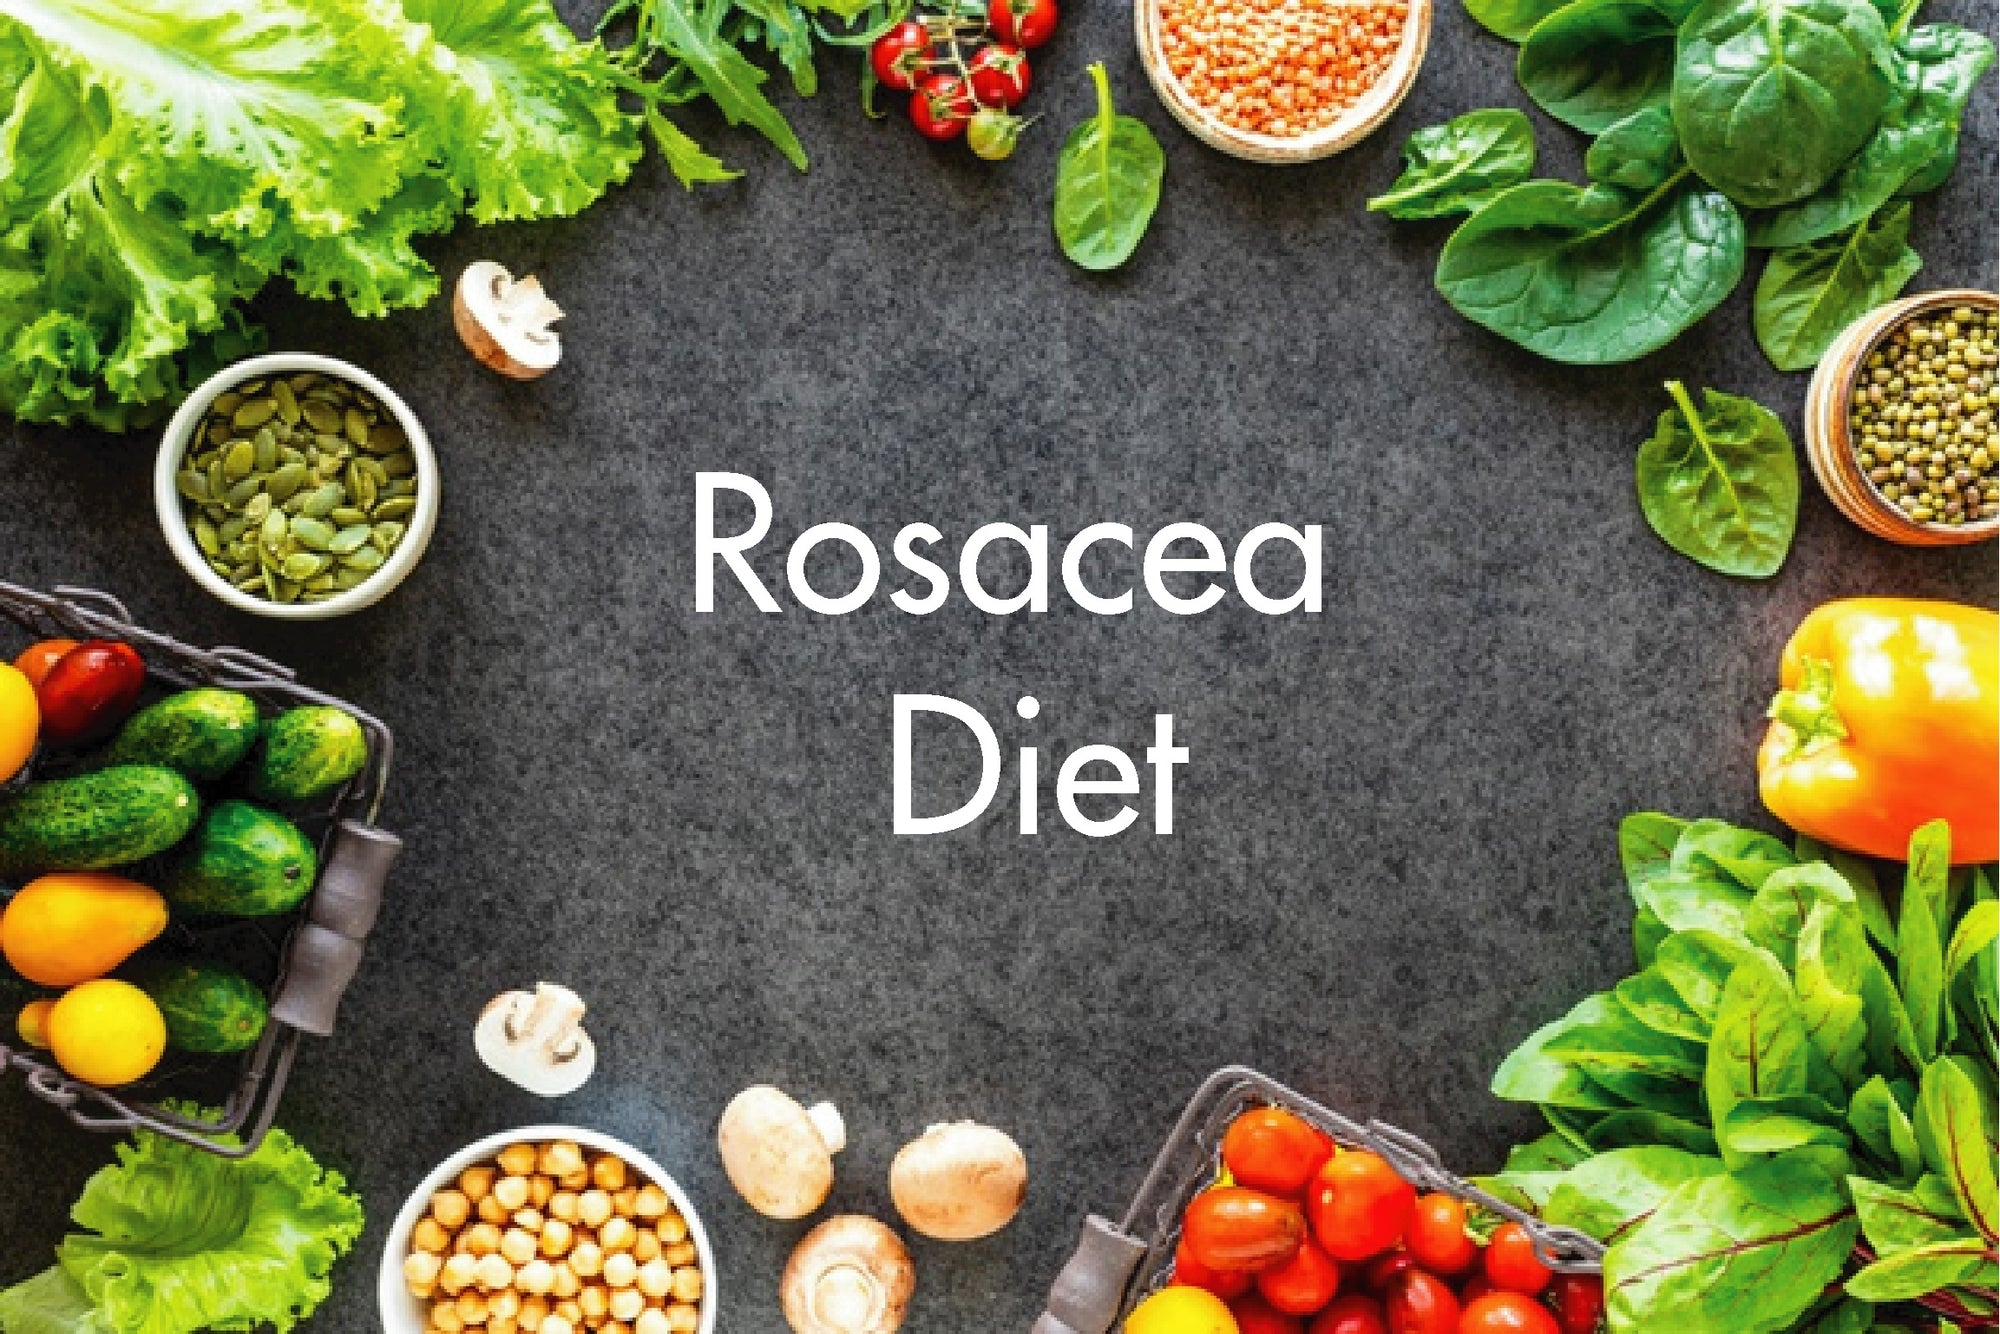 rosacea diet food